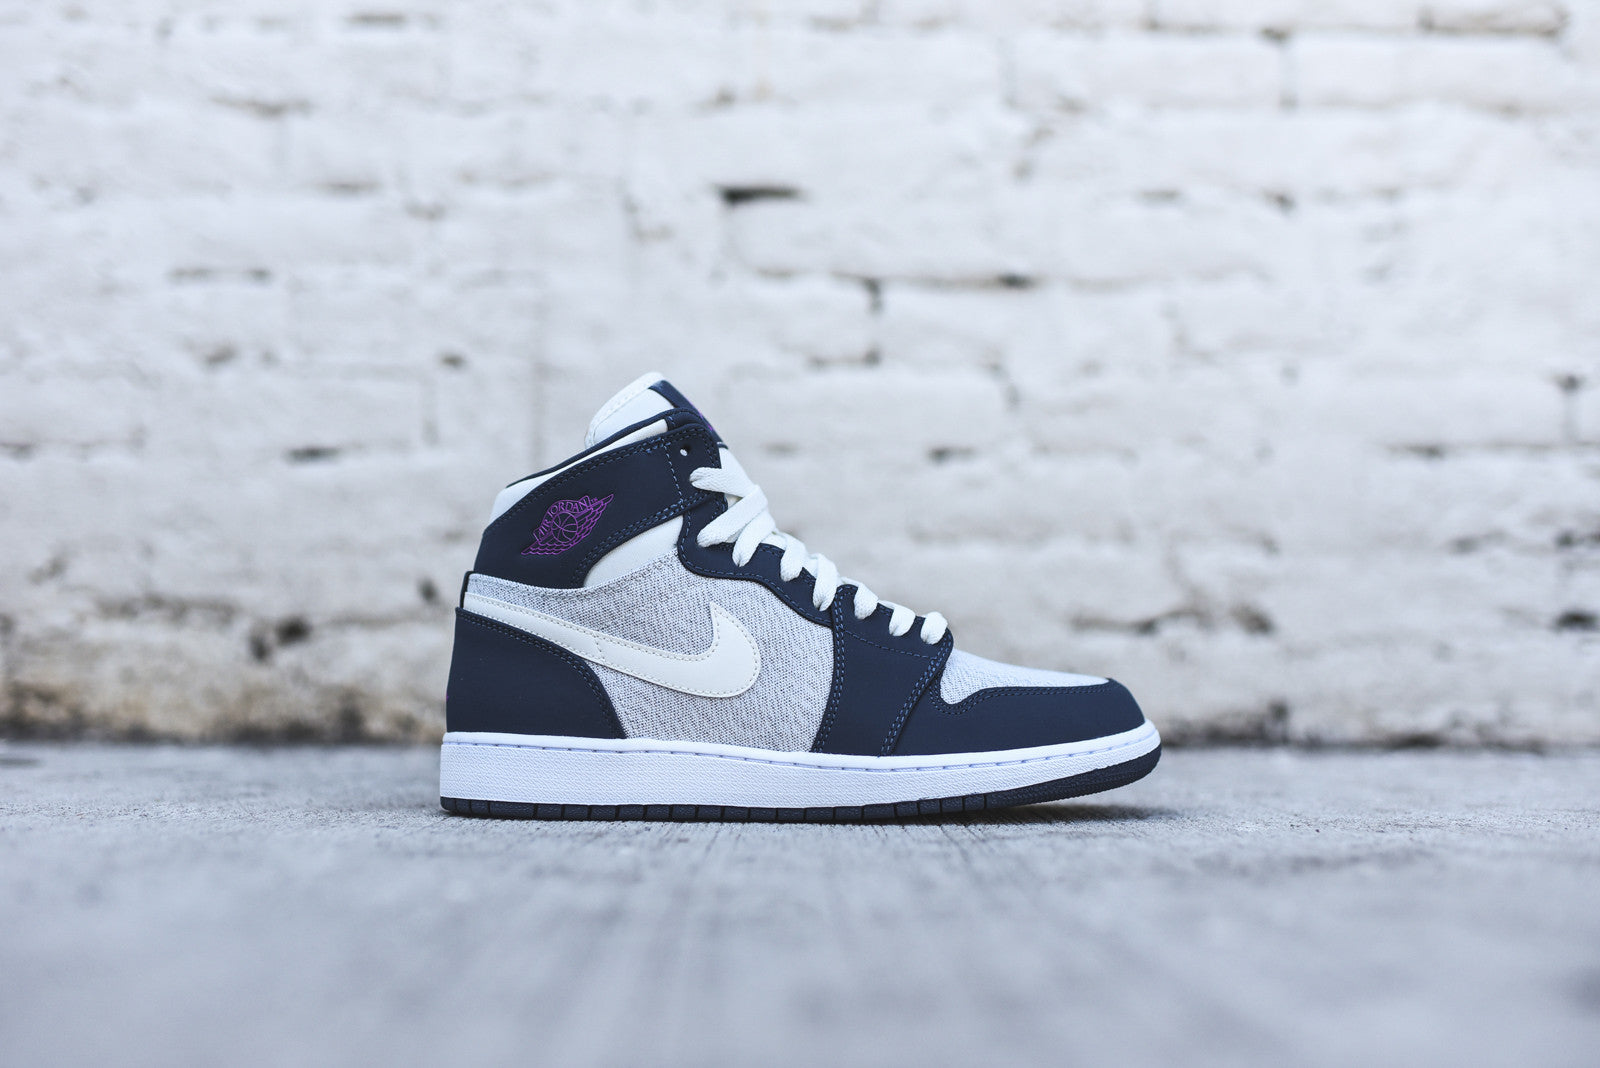 Nike Air Jordan 1 High Retro GS - Squadron Blue